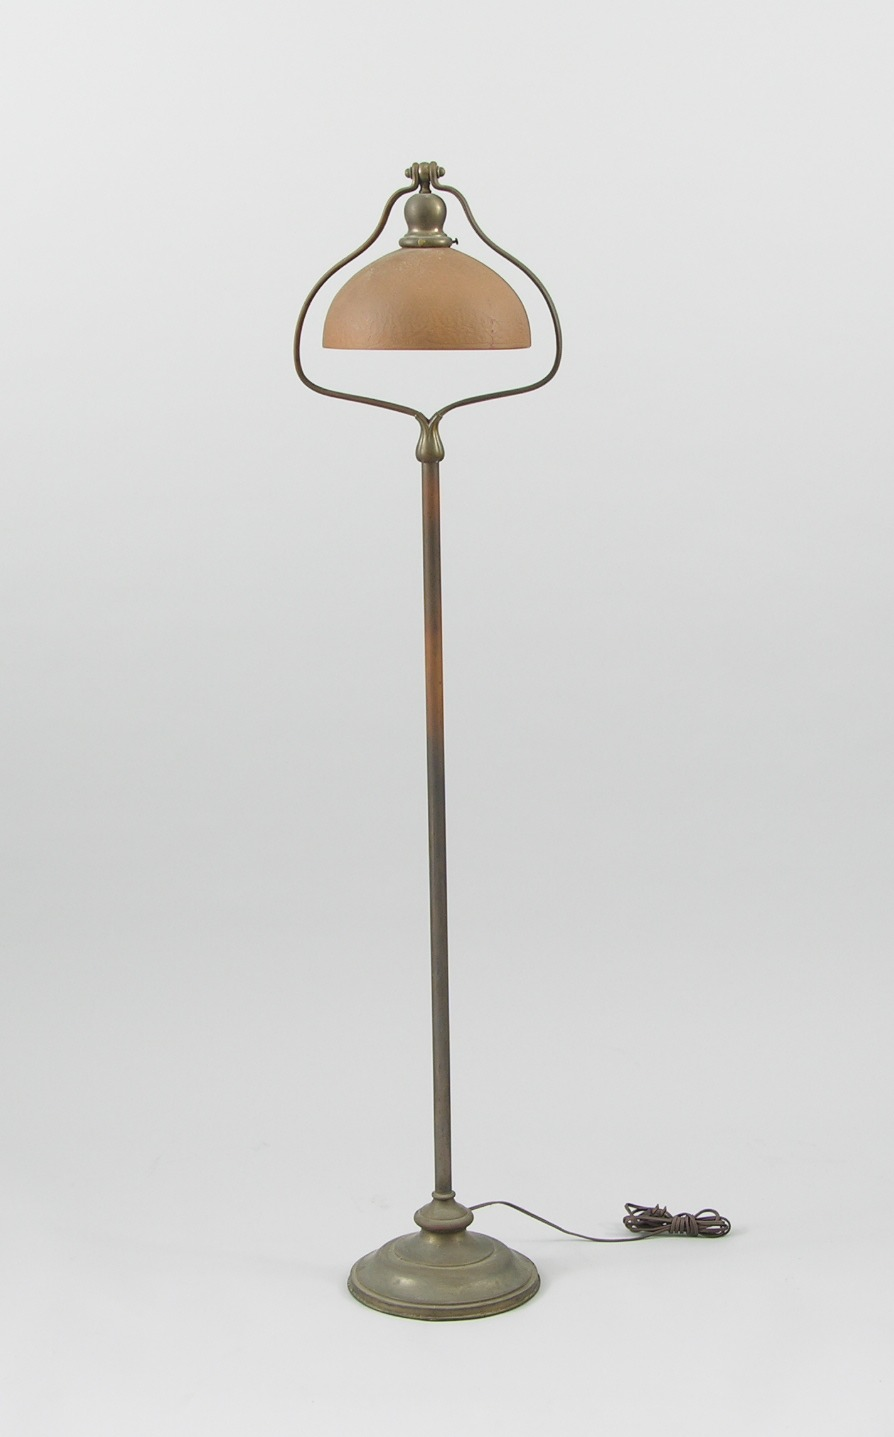 A handel floor lamp with glass shade 112208 sold 4025 a handel floor lamp with glass shade mozeypictures Choice Image